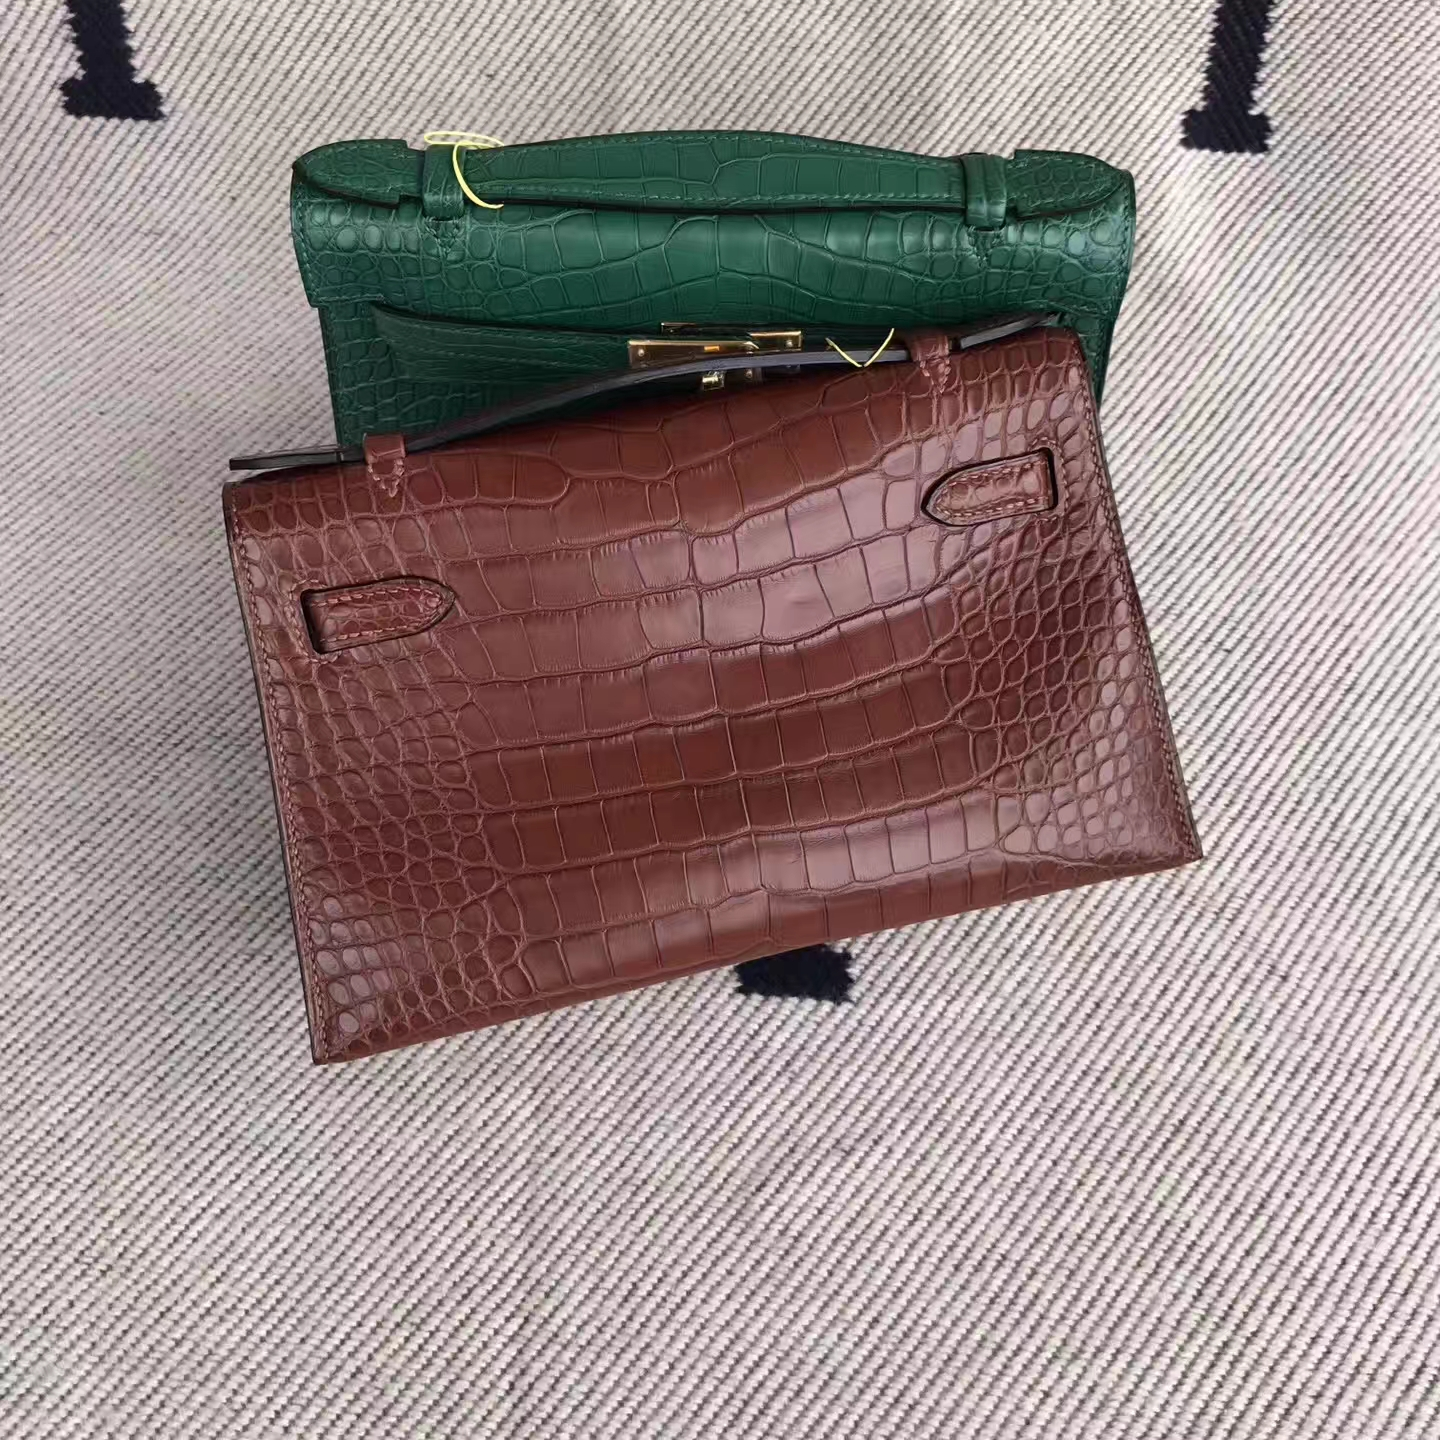 Elegant Hermes Coffee Matt Alligator Crocodile Minikelly Bag22cm